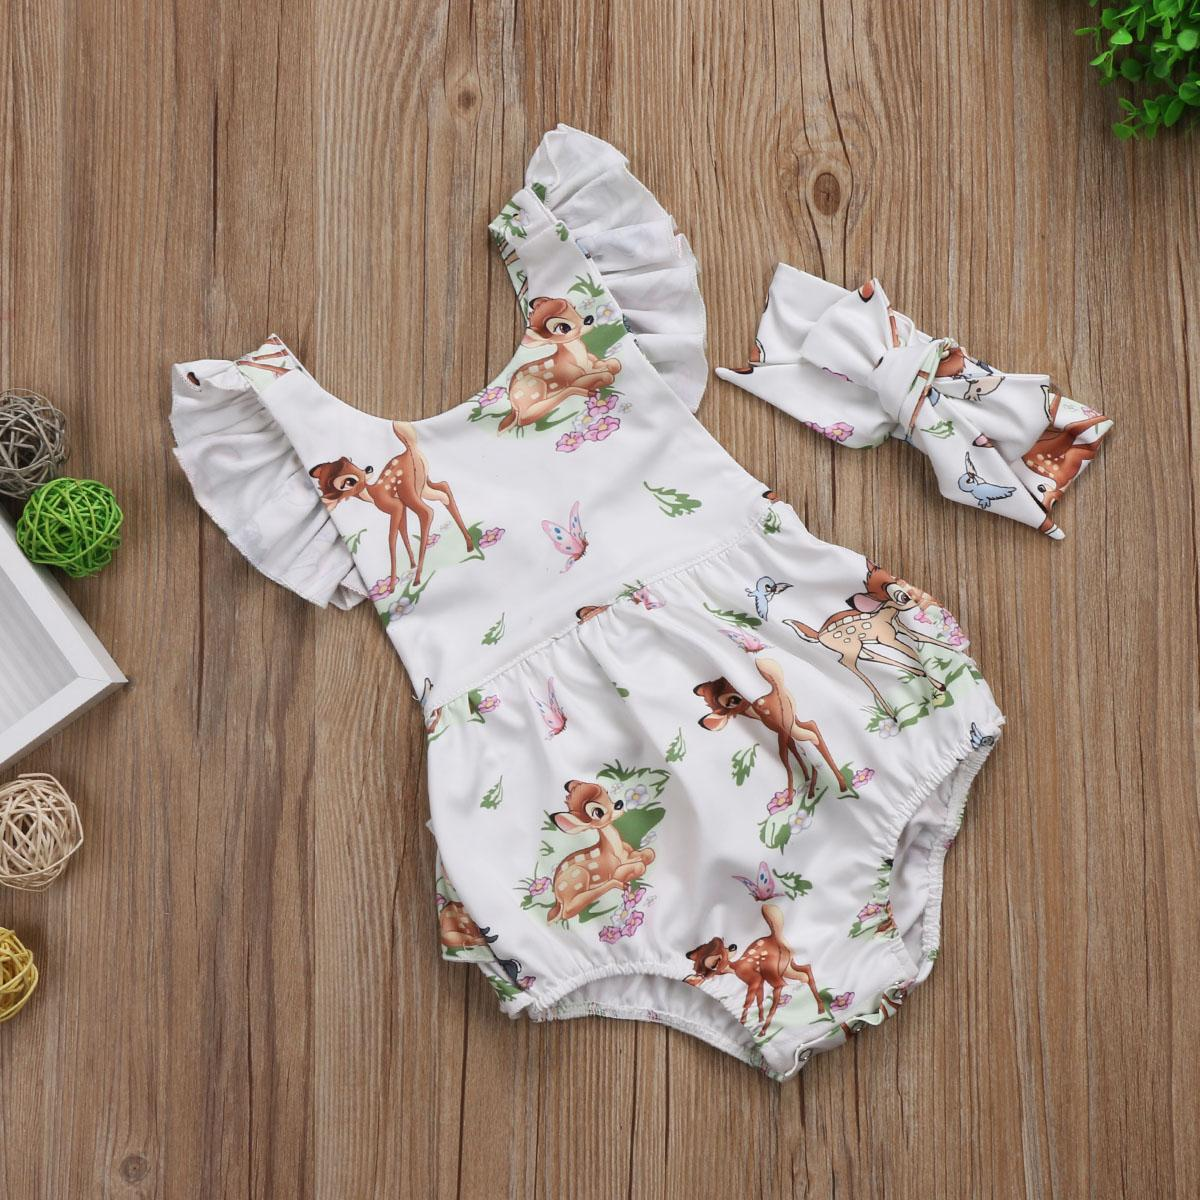 Toddler Baby Boys Bodysuit Short-Sleeve Onesie Suns Out Guns Out Print Jumpsuit Spring Pajamas